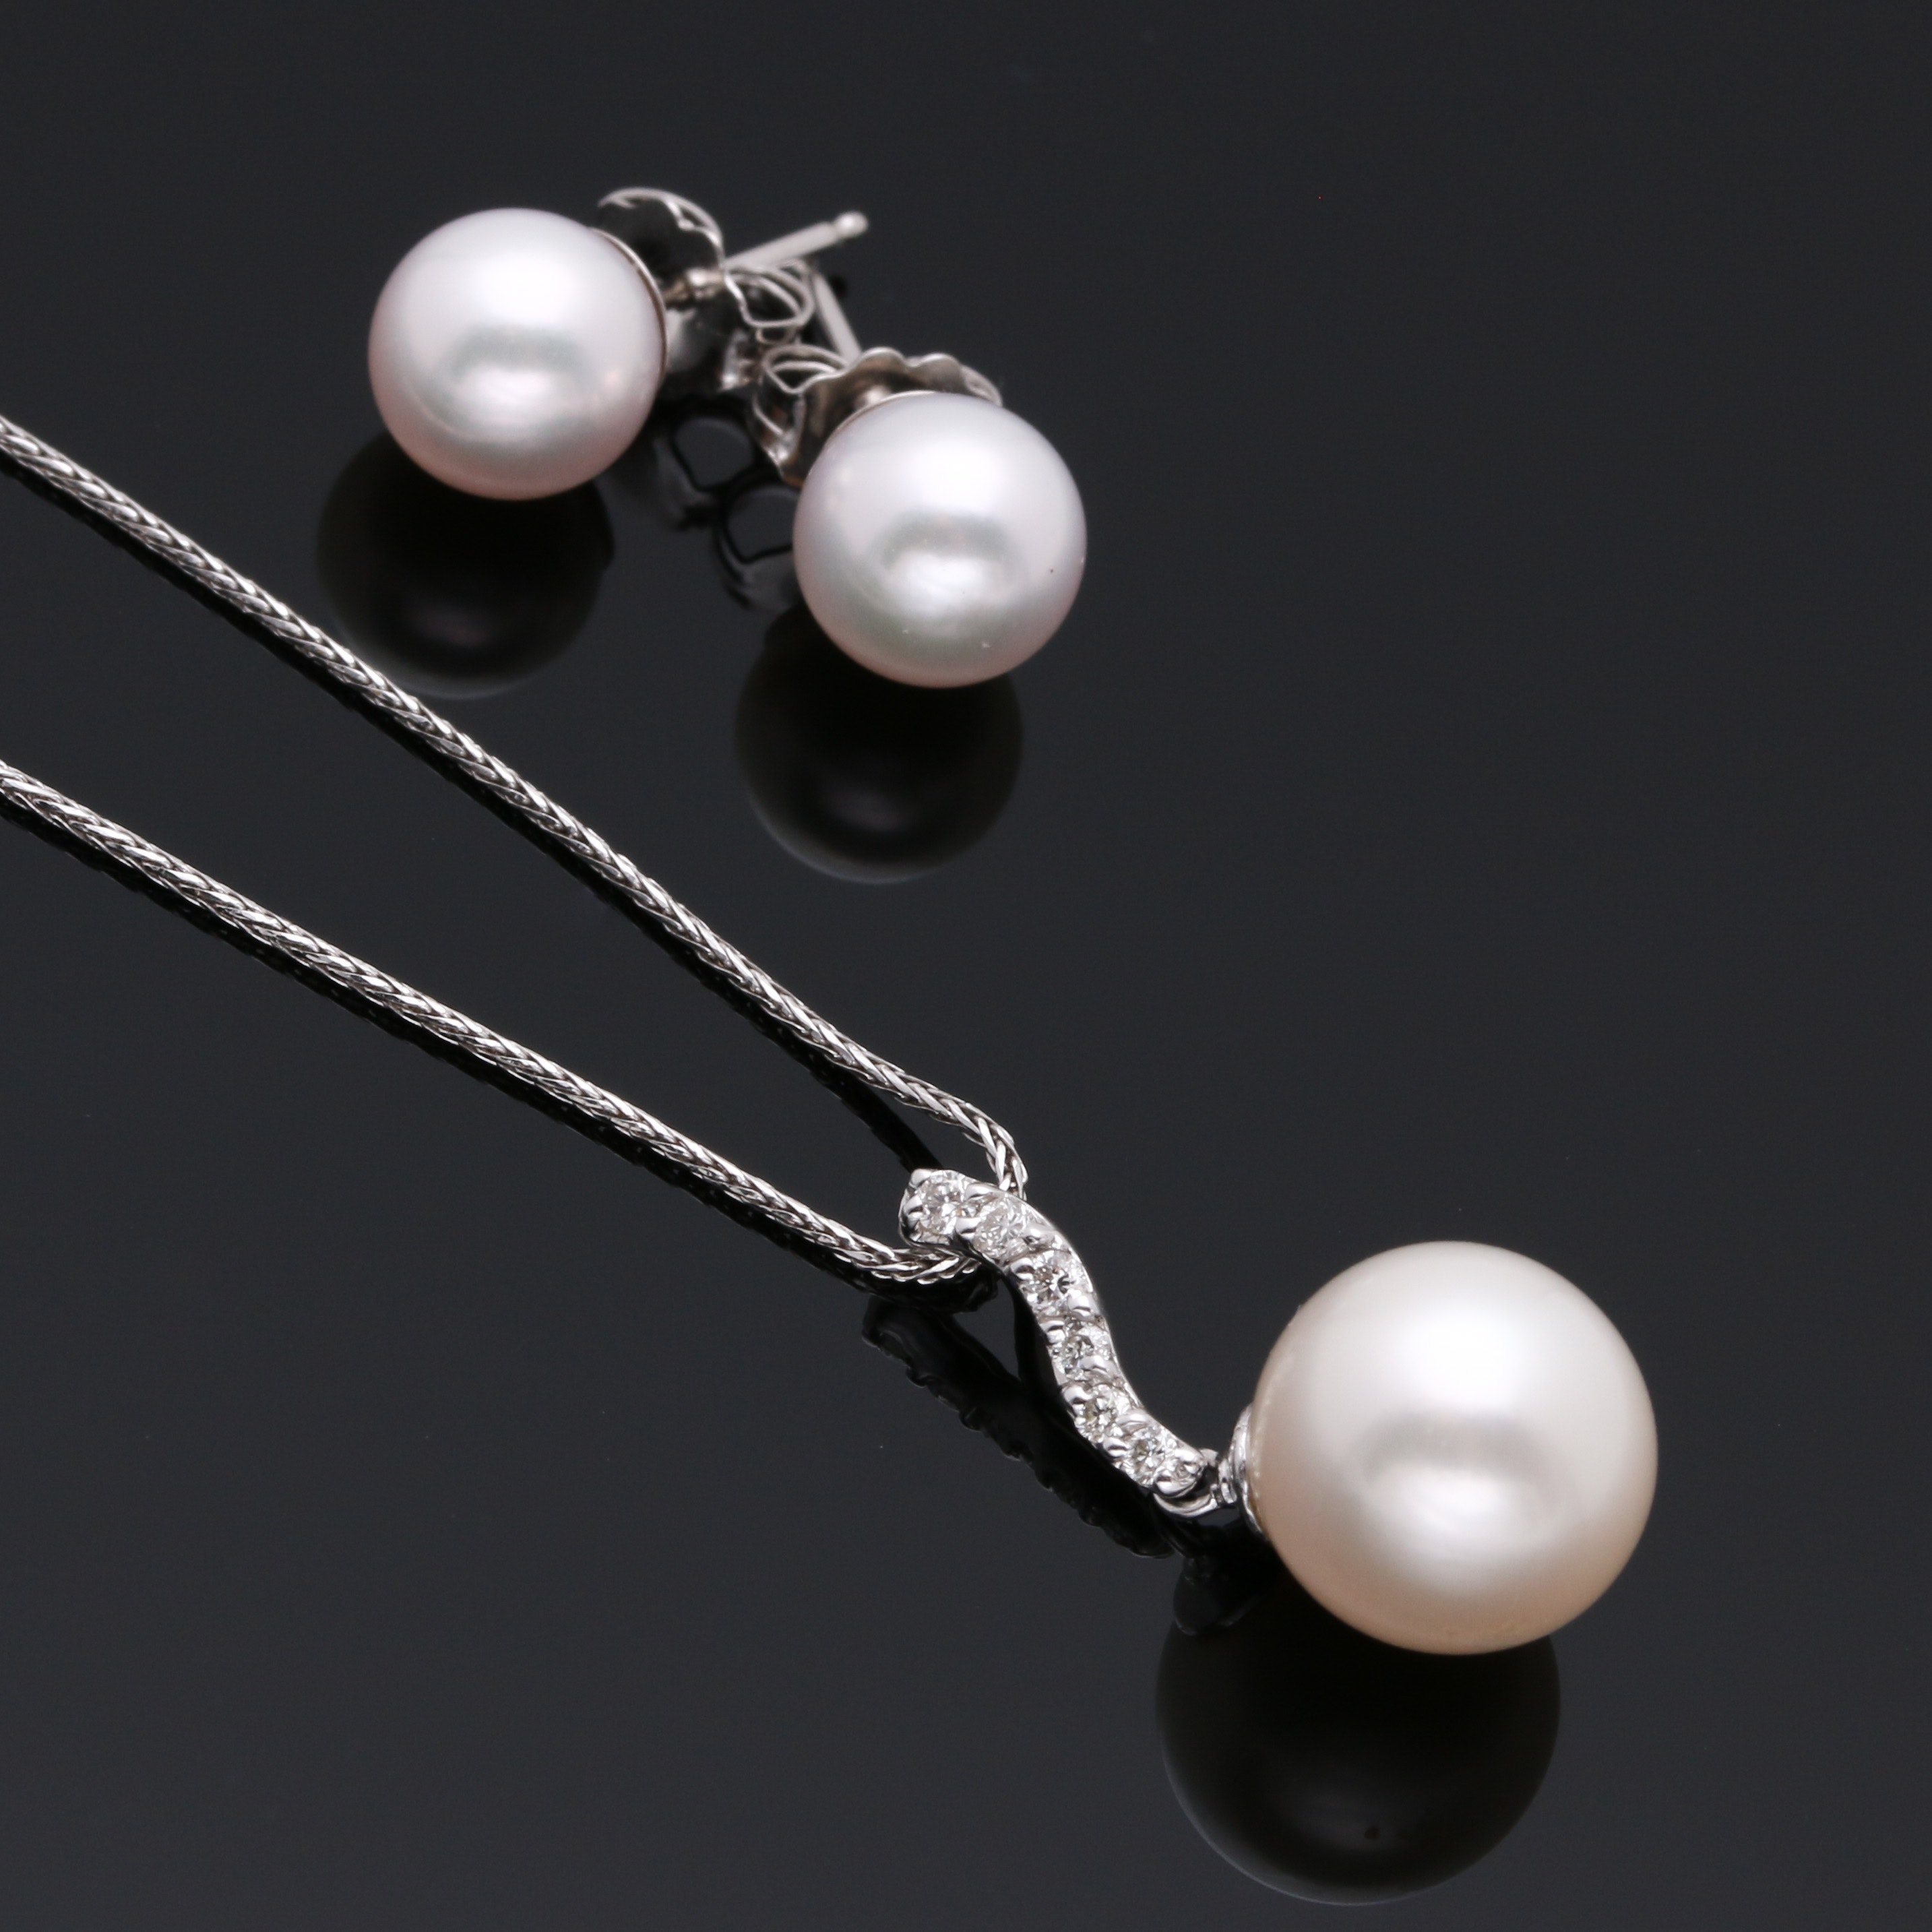 14K & 18K White Gold Cultured Pearl and Diamond Demi Parure